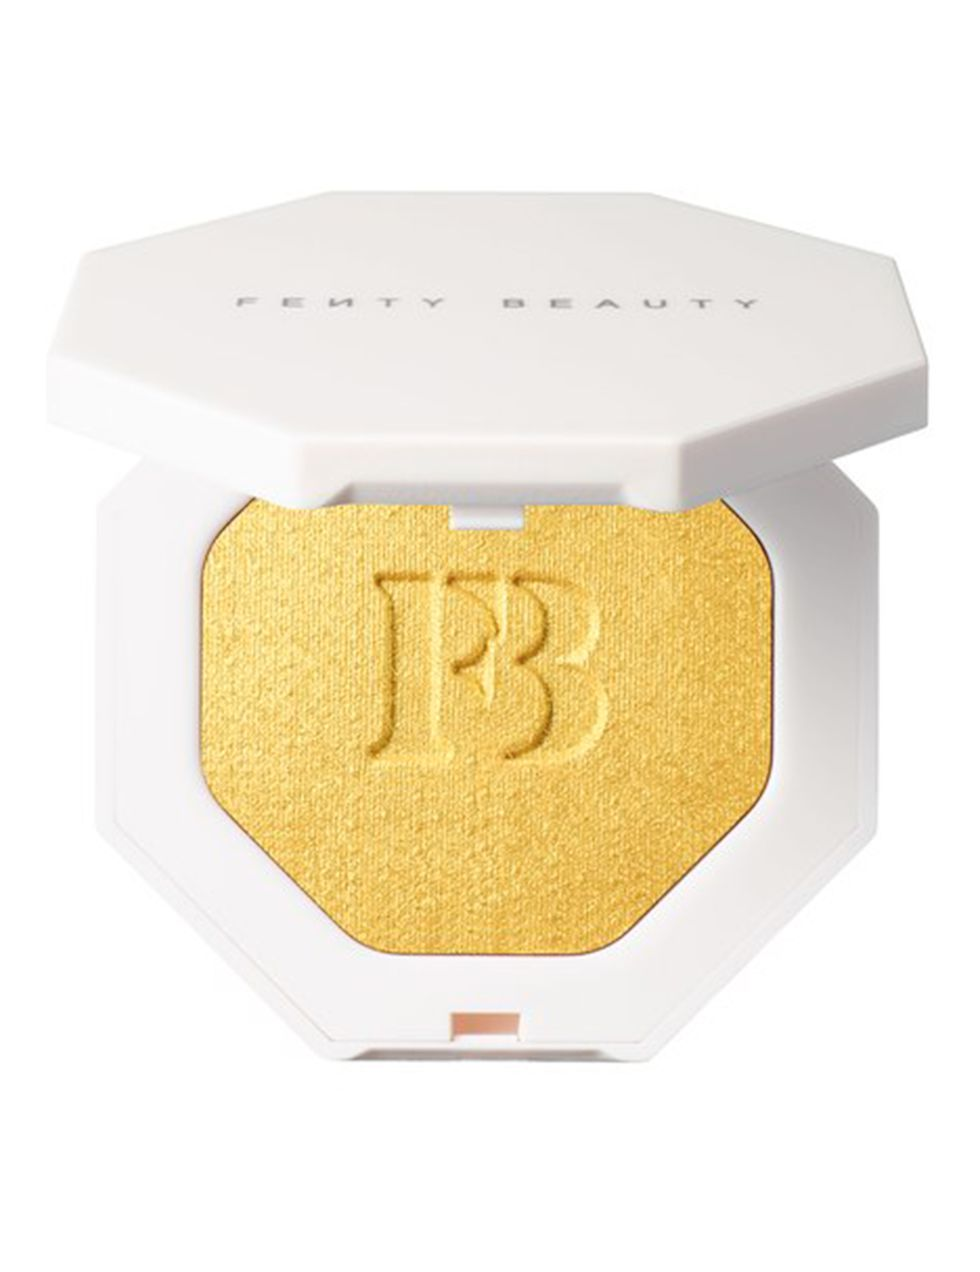 Fenty beauty - €27.50